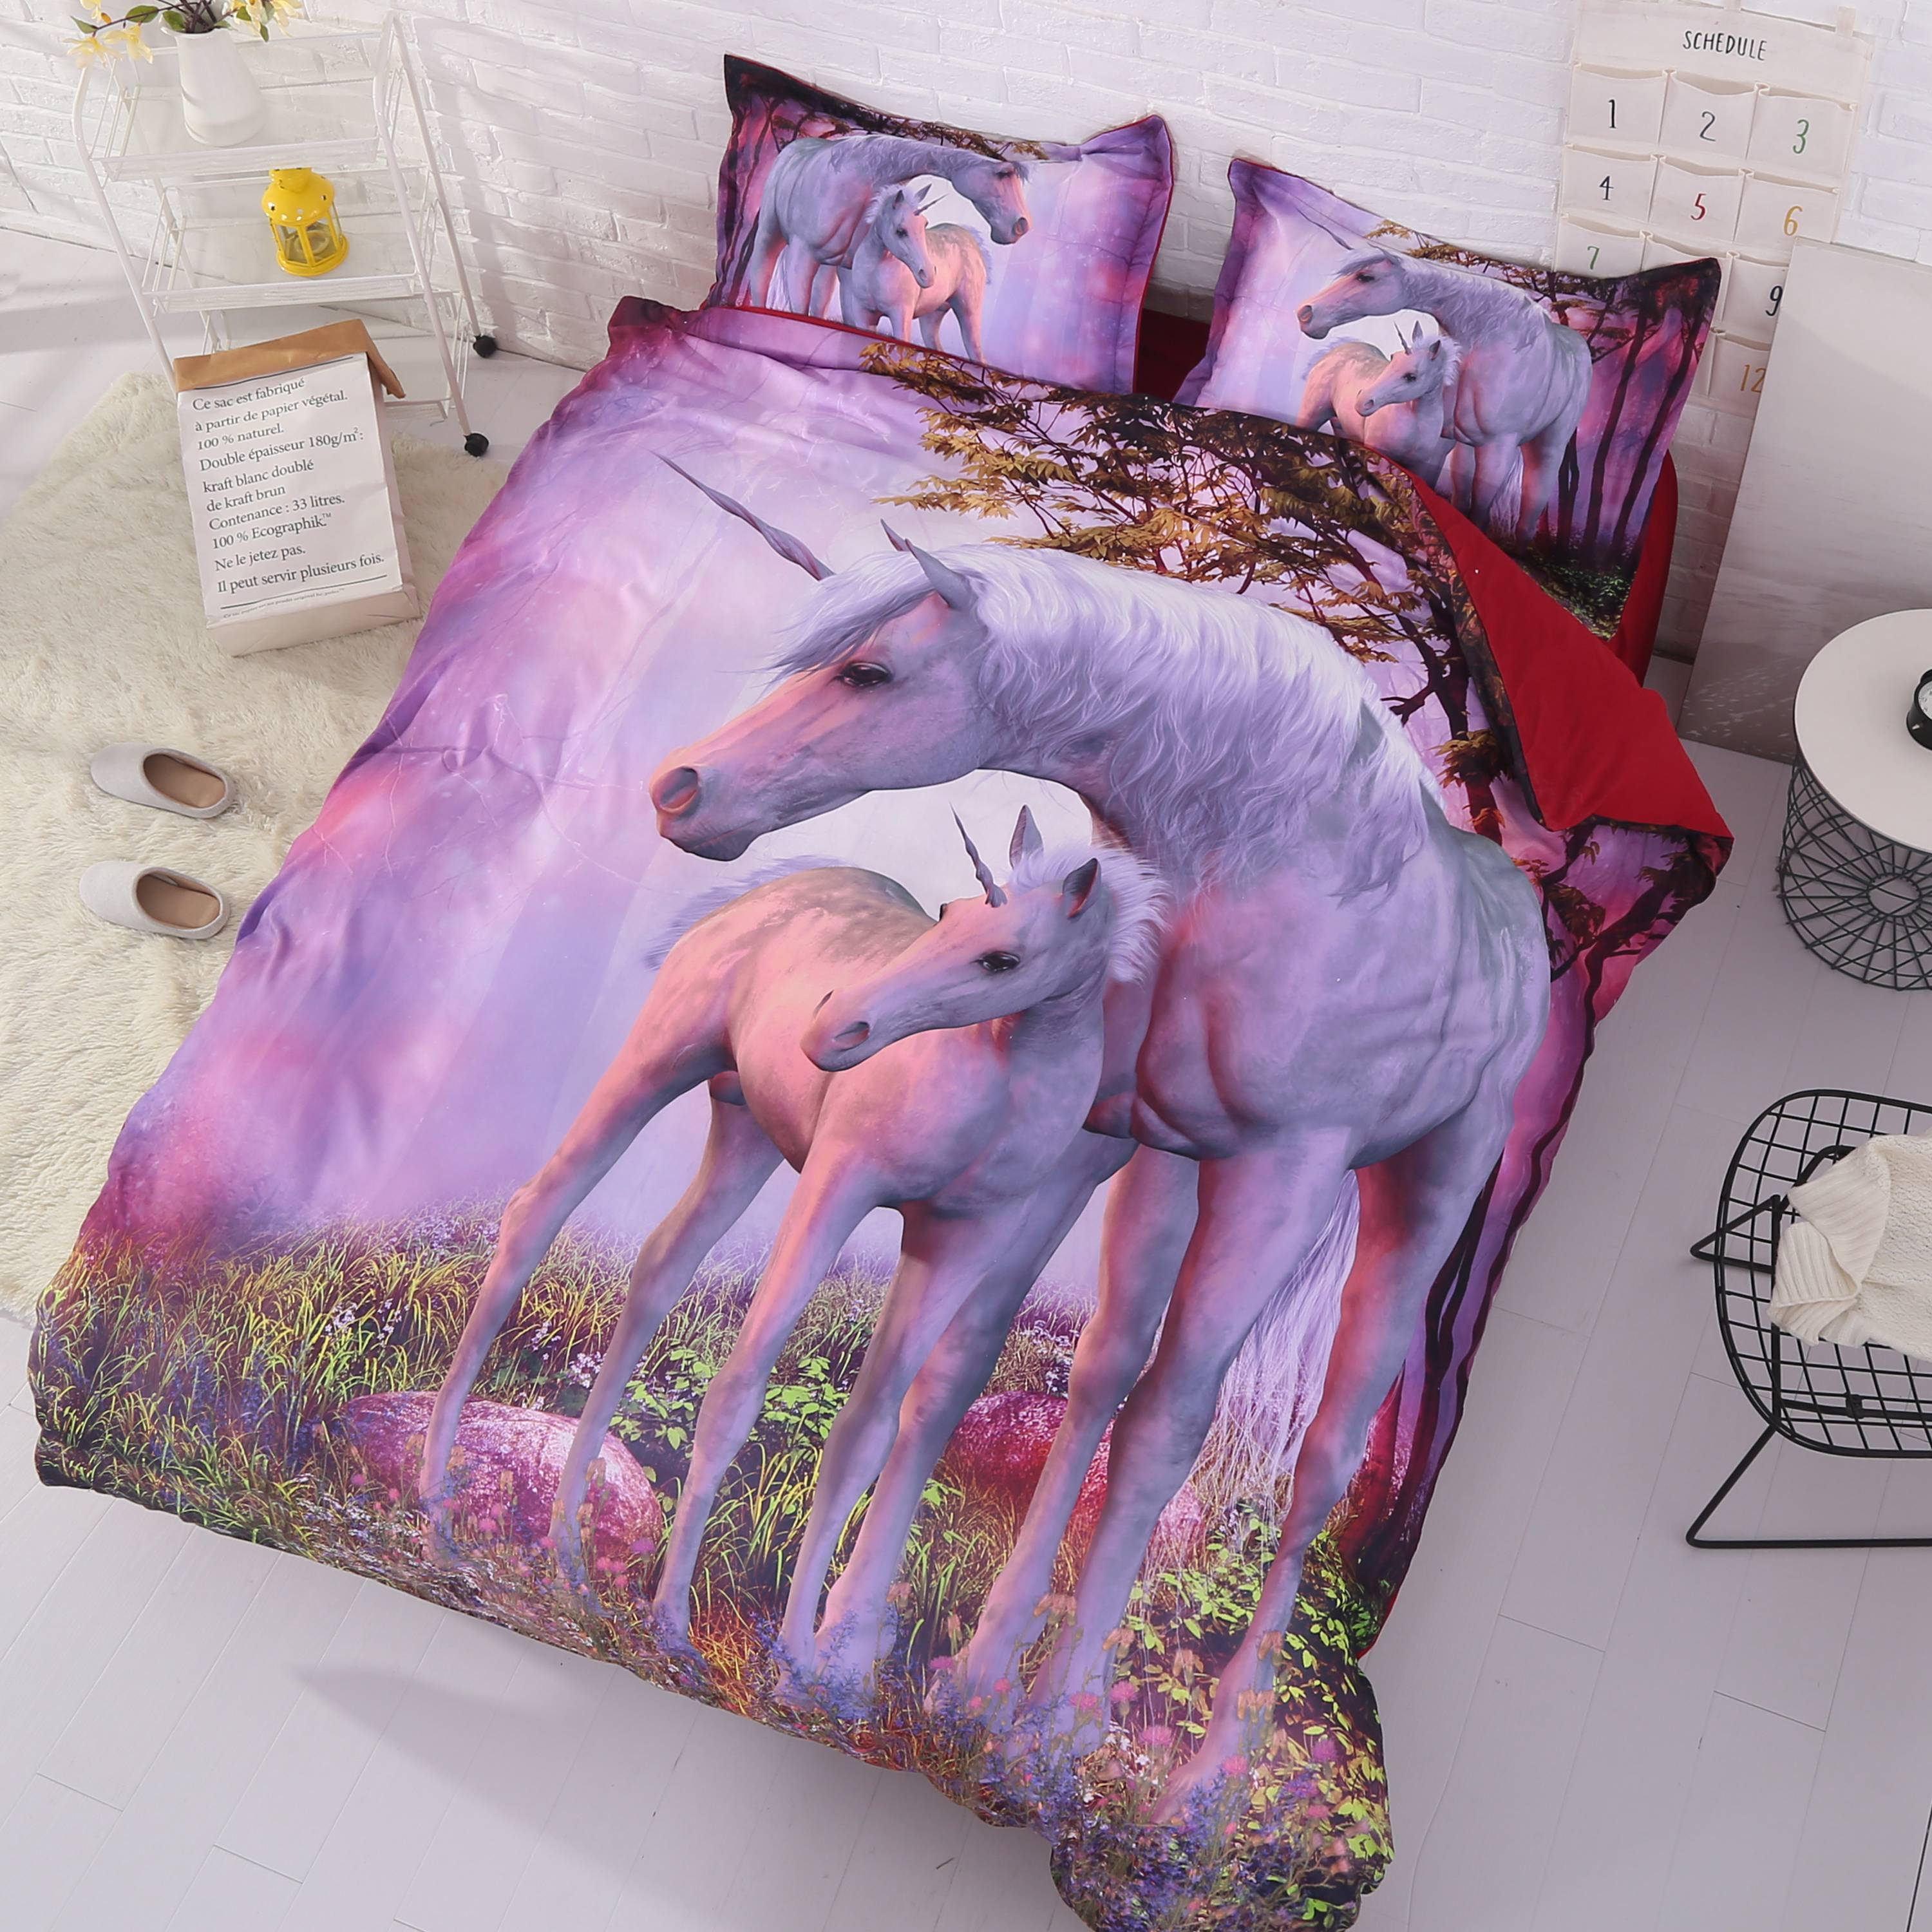 3D Unicorn Printed Cotton 4-Piece Bedding Sets/Duvet Covers